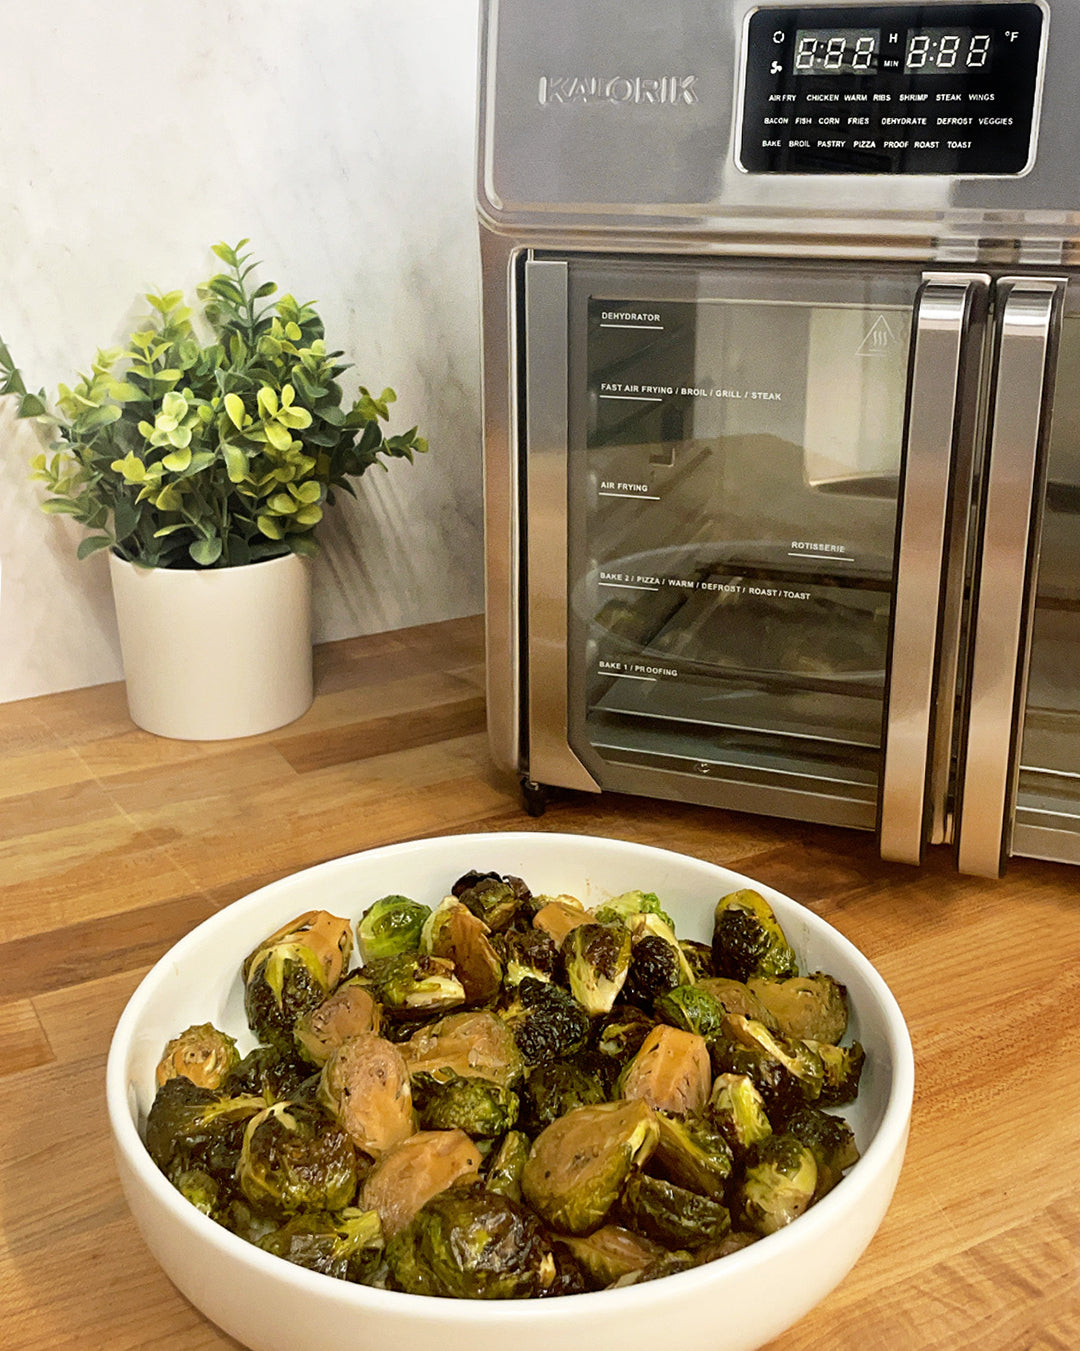 Balsamic Glazed Brussels Sprouts in the Kalorik MAXX Air Fryer Oven